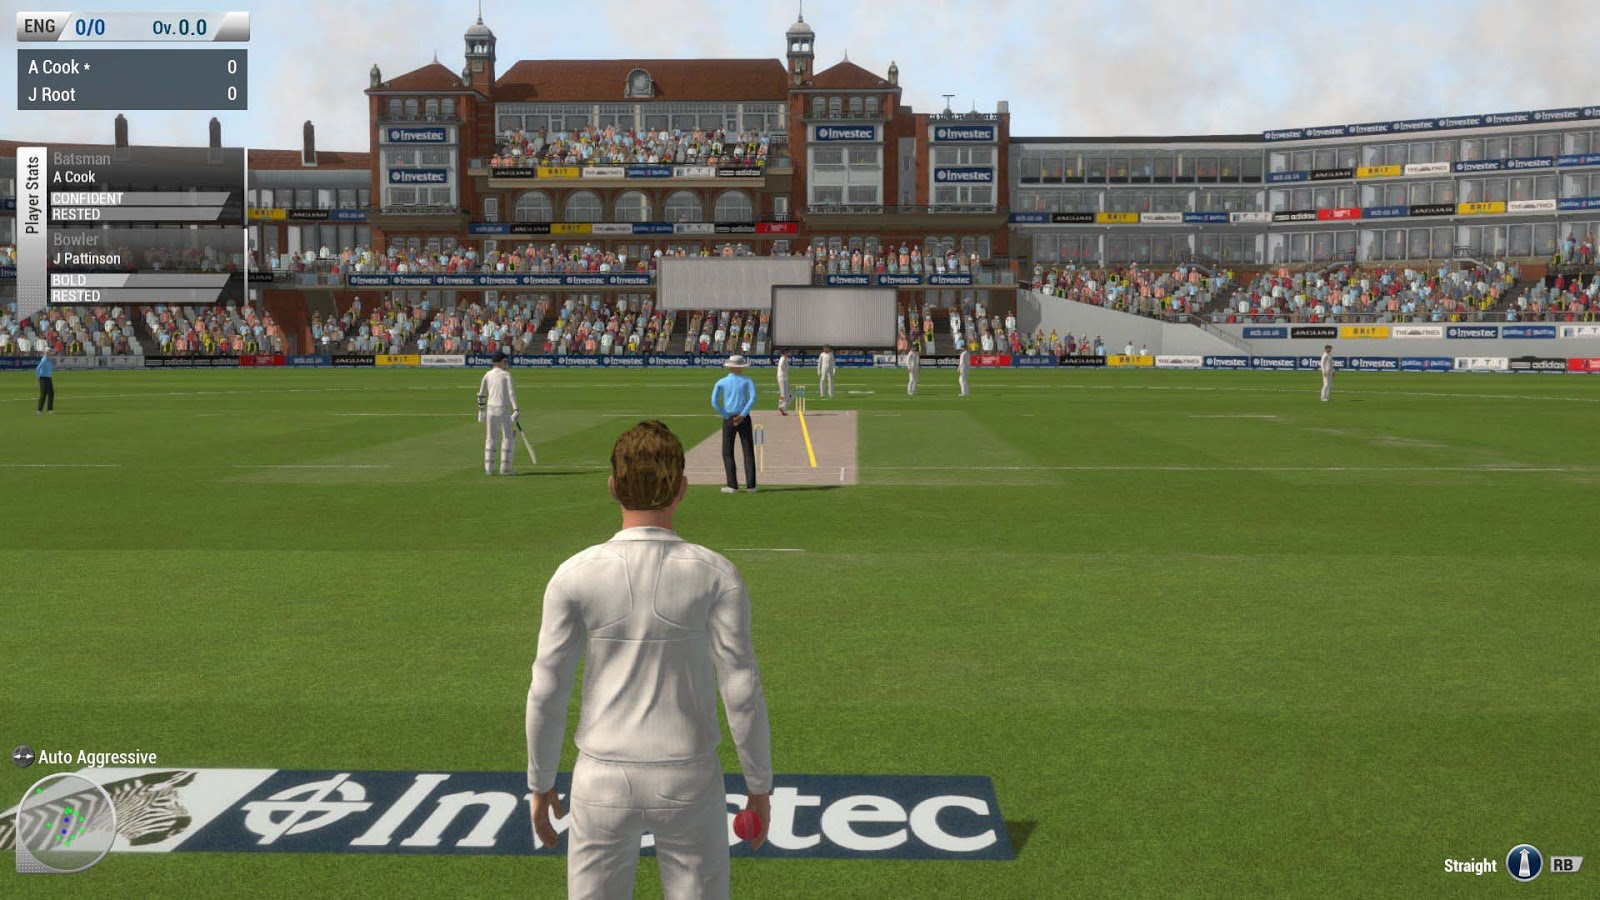 hd cricket games free download for windows 7